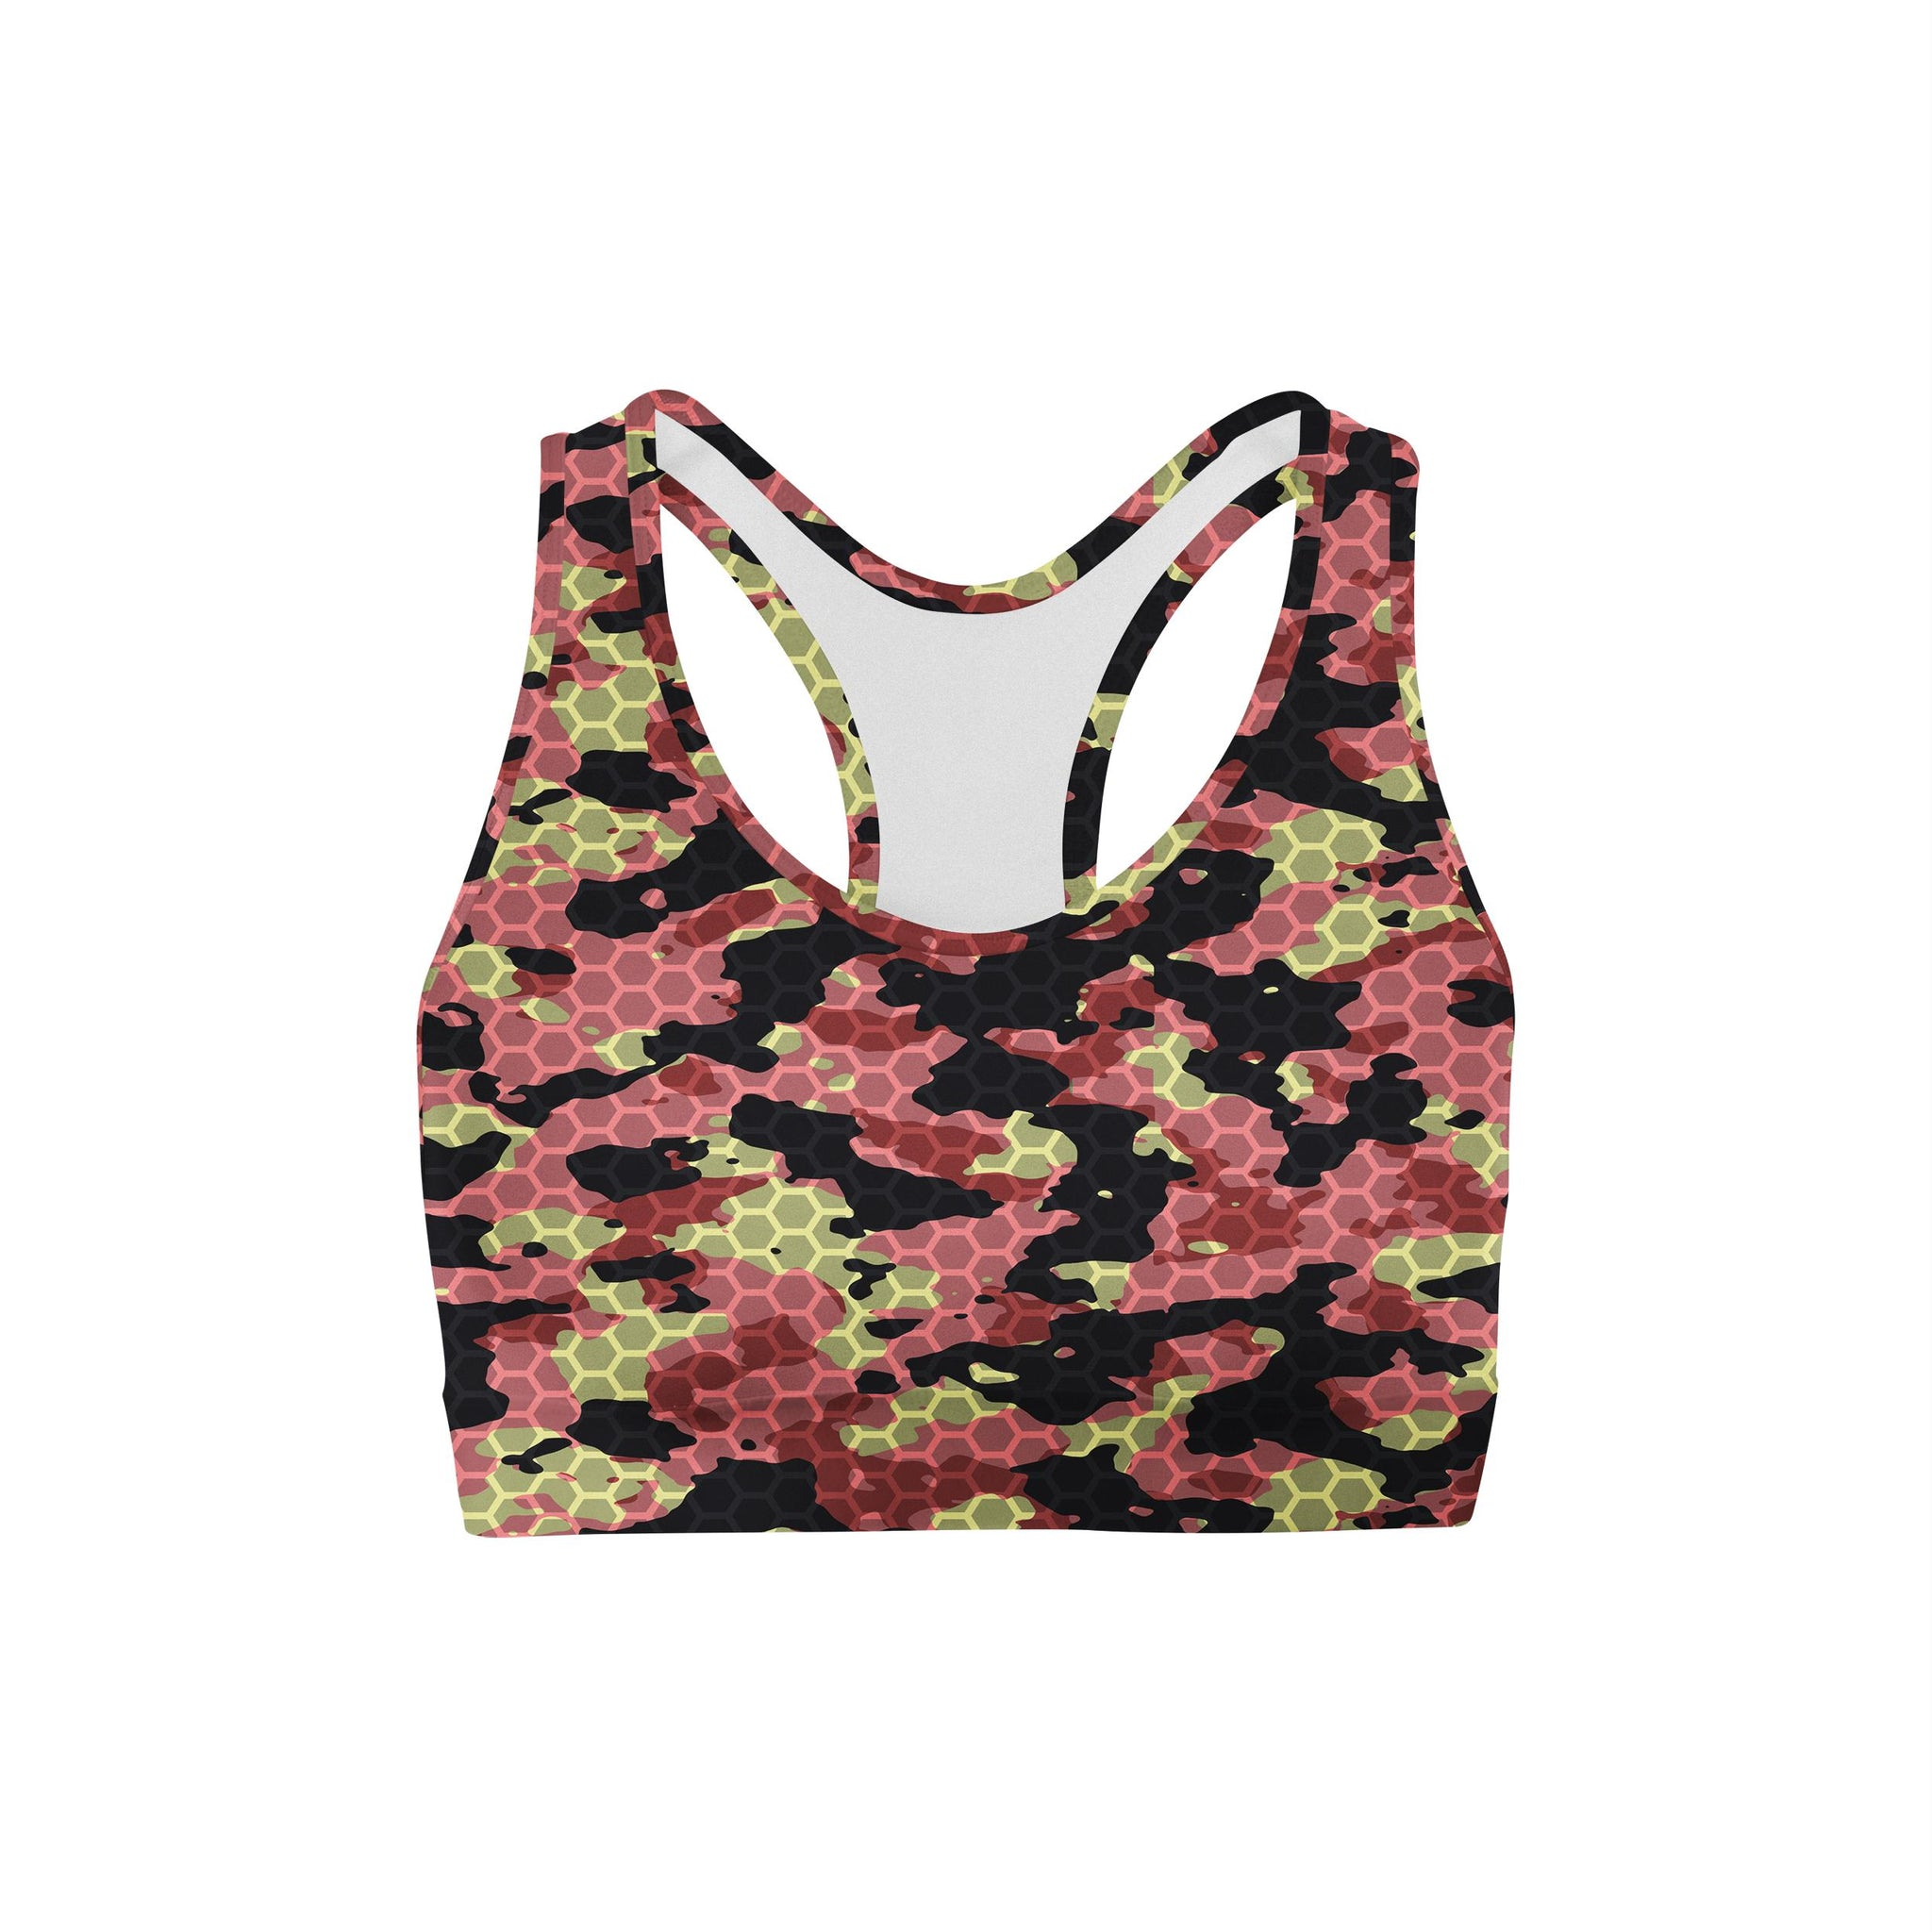 Watermelon Rush Camouflage Mirror Sports Bra